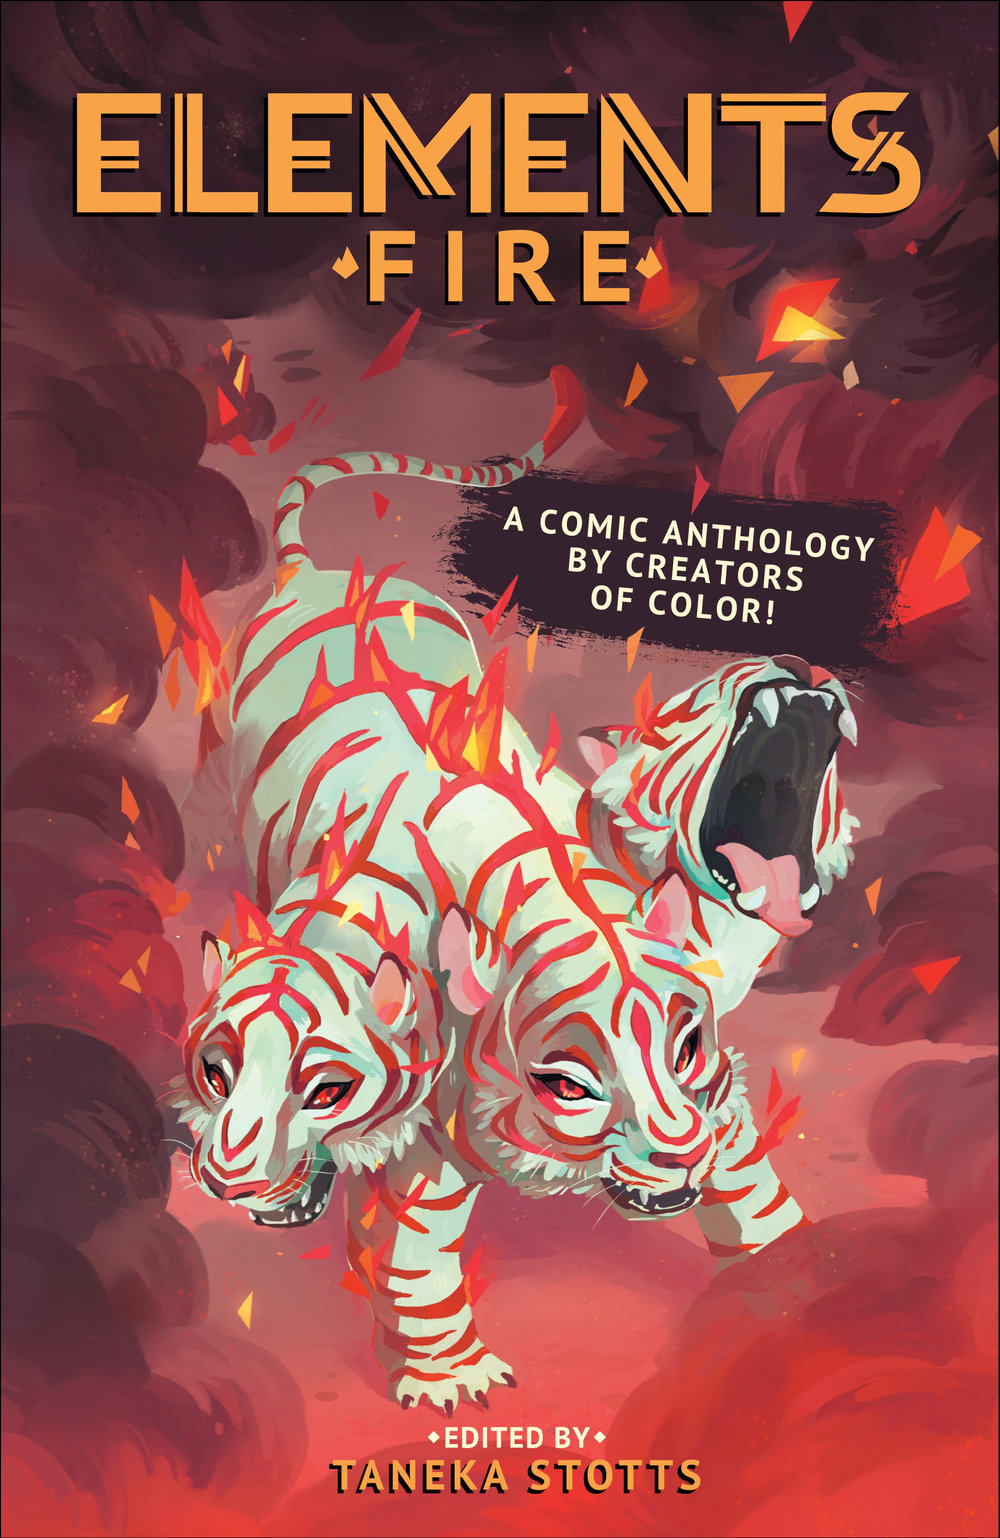 - ELEMENTS: FIRE - publisher / editor(Beyond Press, 2016)An all-ages anthology focused on creators of color sharing comics with a fire theme, ranging from sci-fi & fantasy to alternative cyberpunk, humor, and suspense.